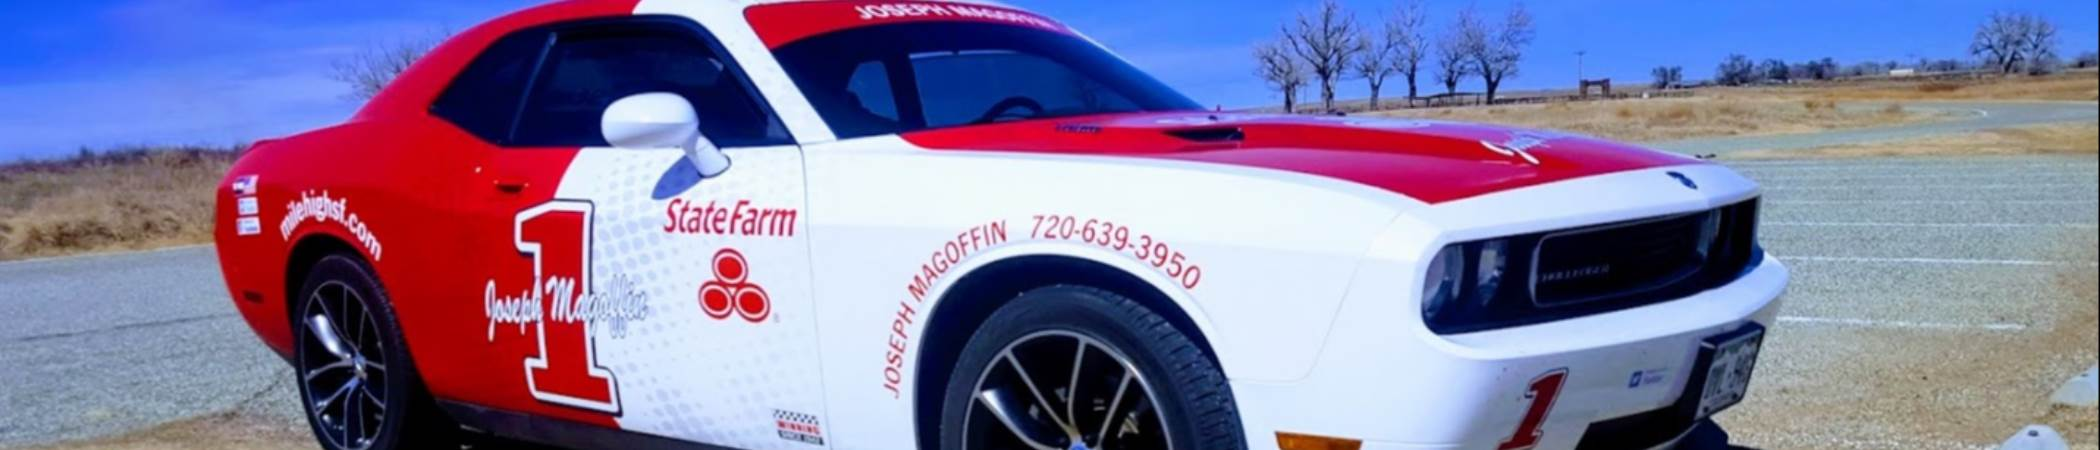 Joseph Magoffin State Farm Insurance in Littleton, CO | Home, Auto Insurance & more